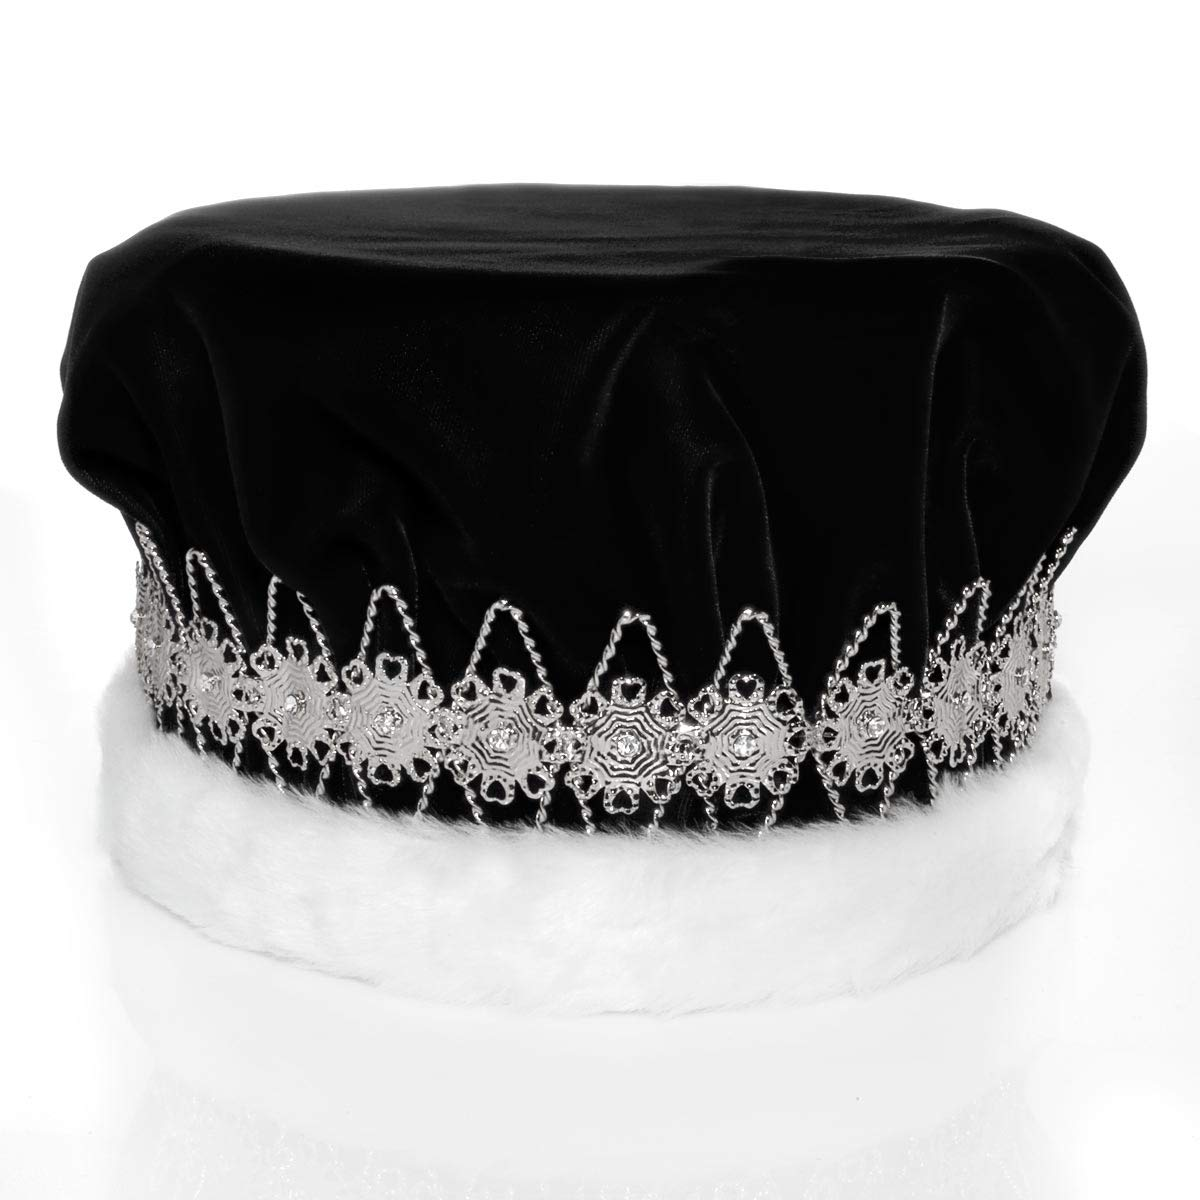 Black Velvet Regal Crown with White Faux Fur Trim and Silver Floral Band, 6 1/2'' high